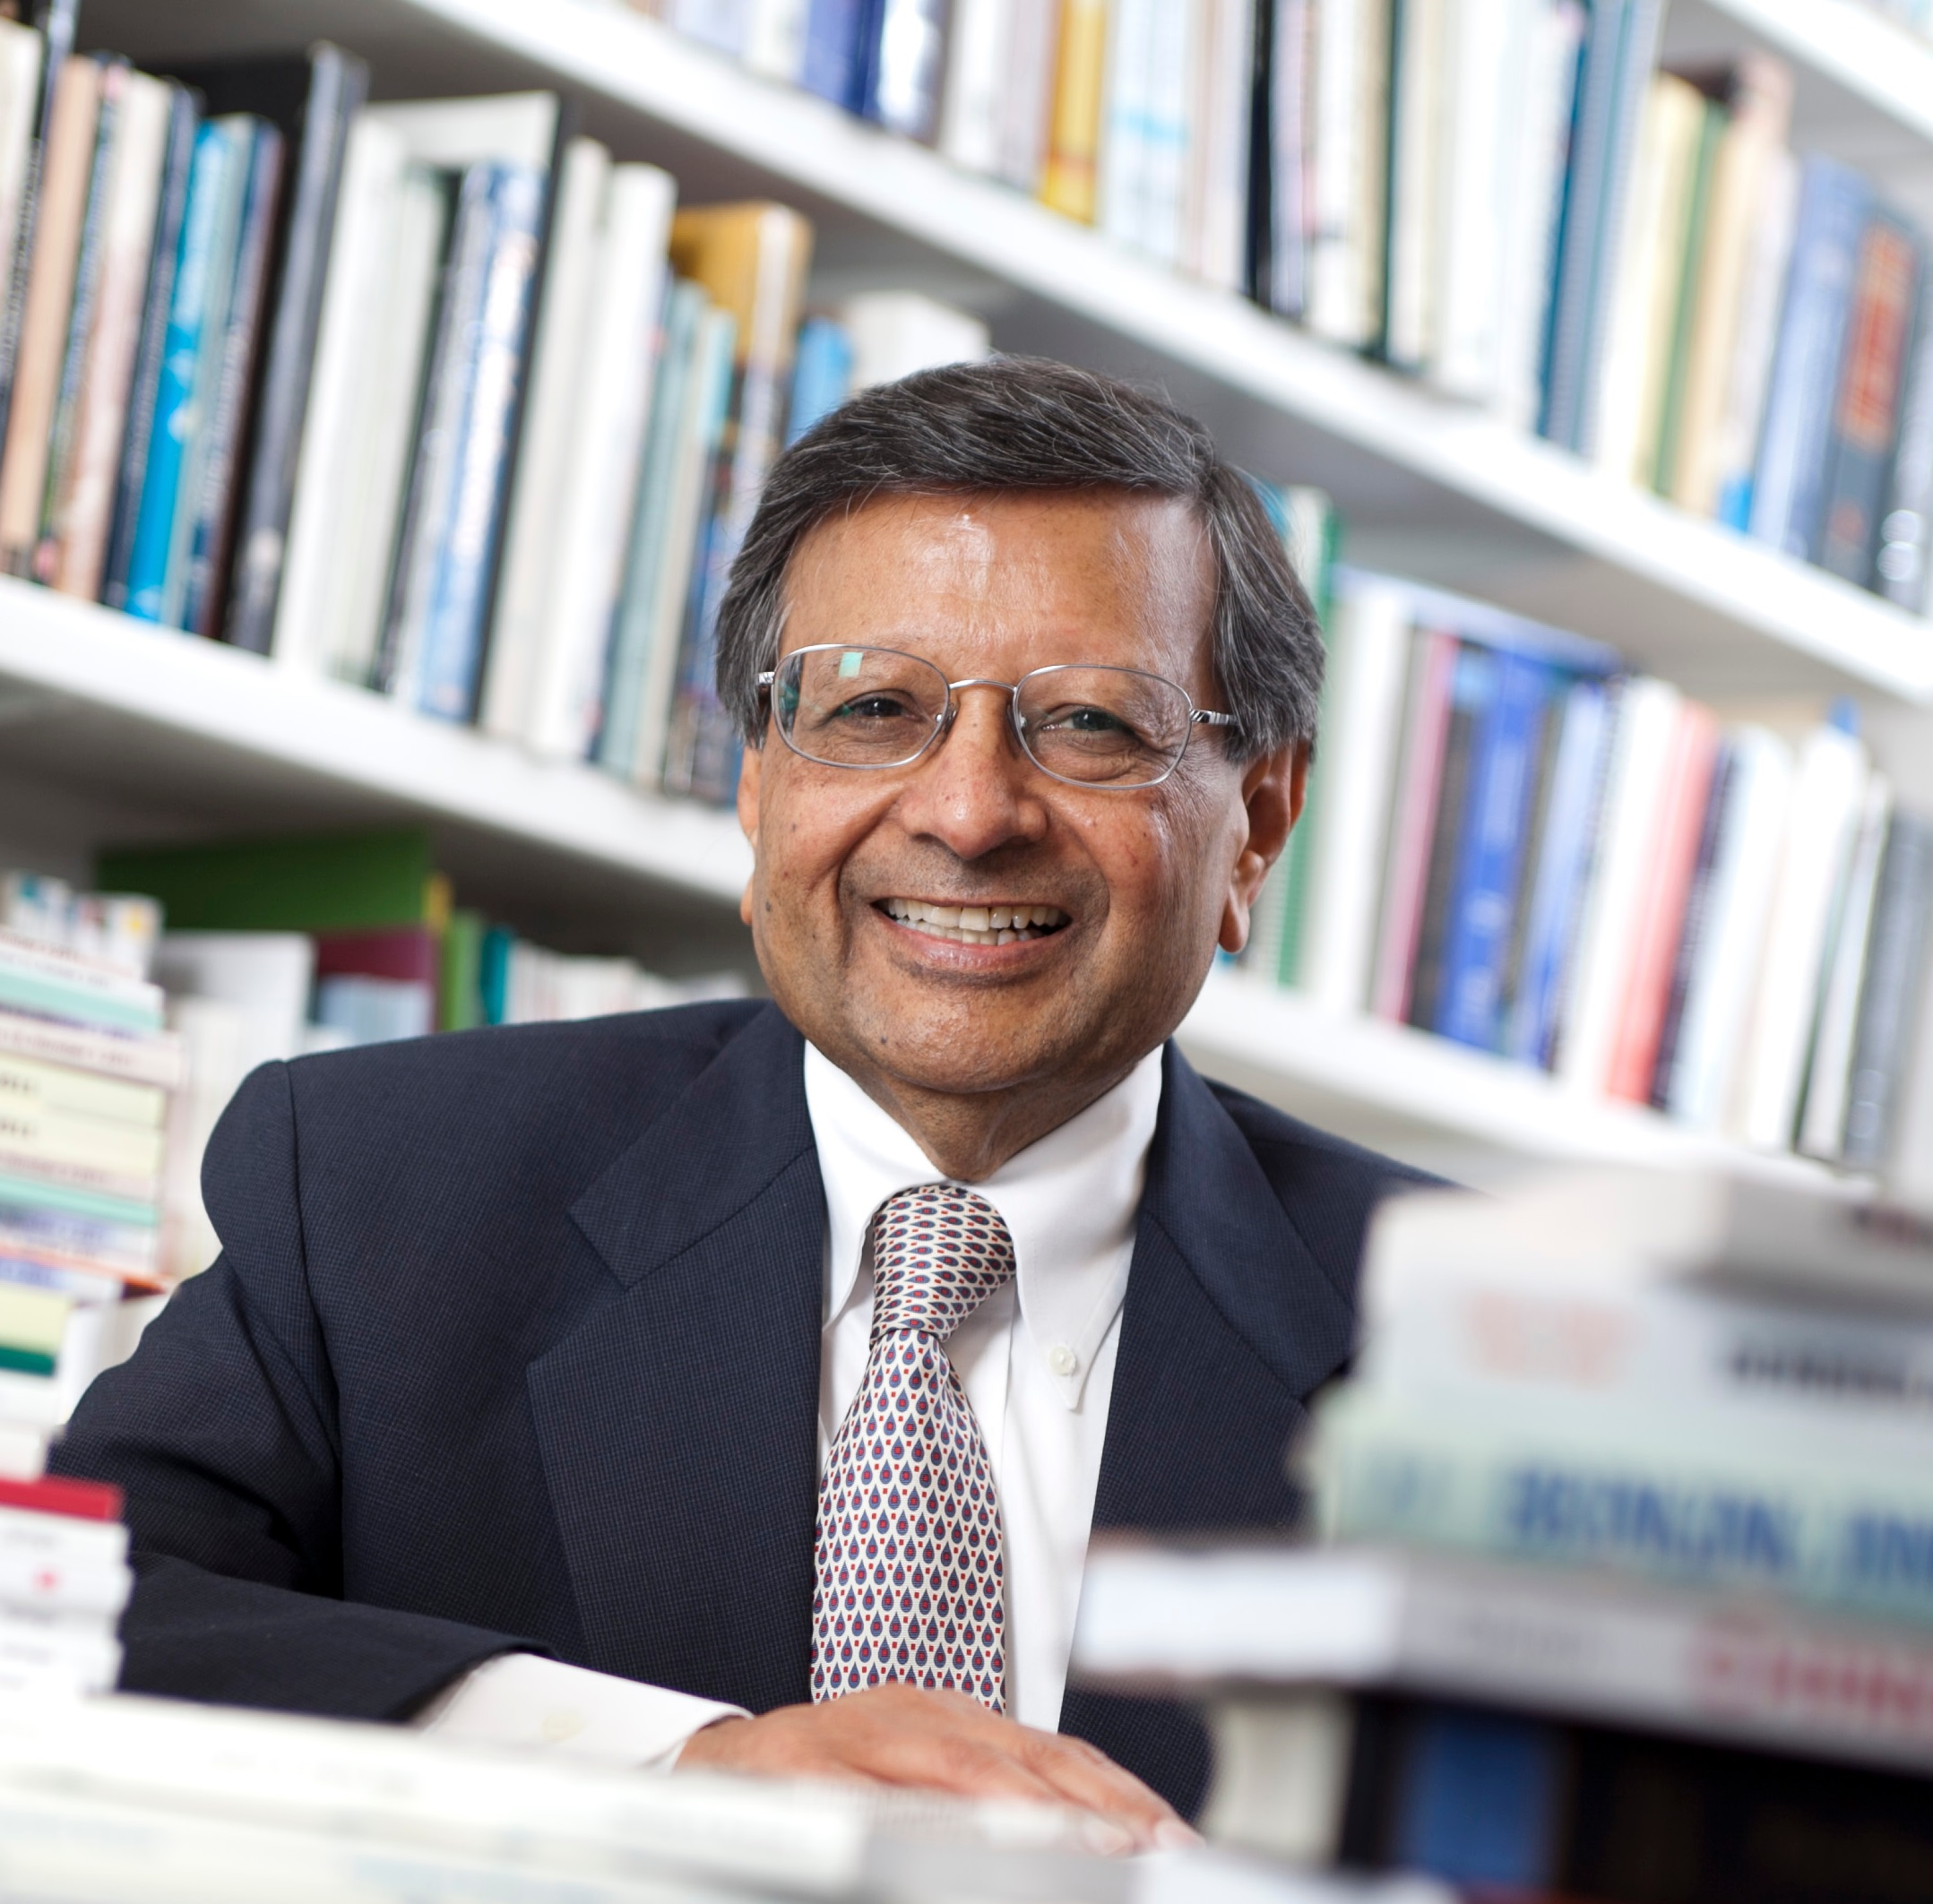 Dr. Sheth Highlighted in November 2014 AuthorSpeak